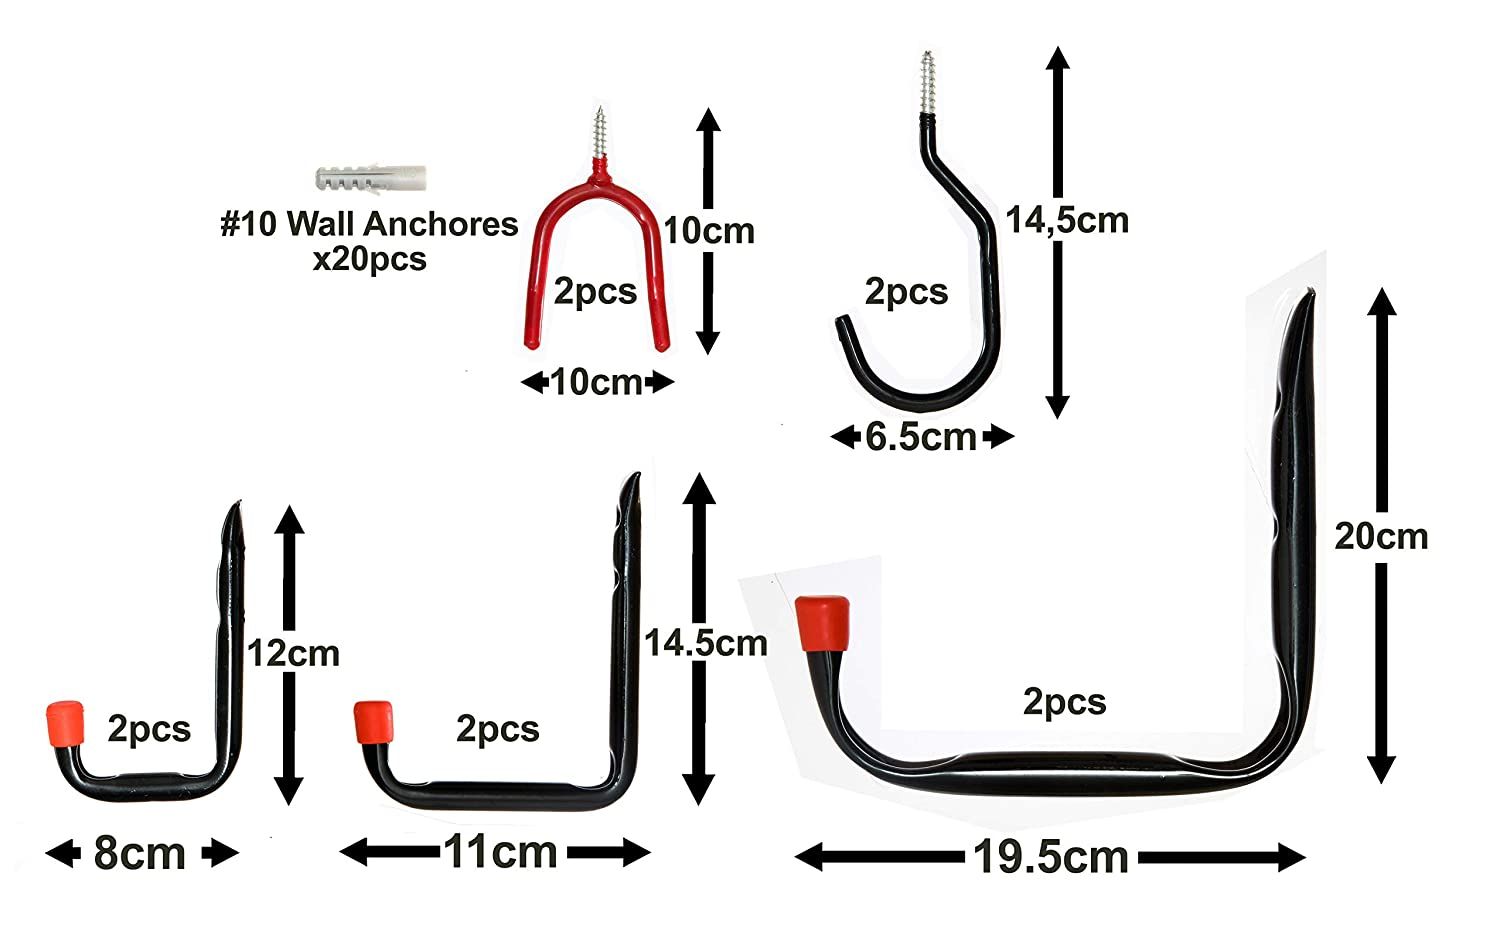 10x Wall-Mounted Garage Hooks 30pc Assortment Set for Home Use Hanging /& Storing Tools Bikes Ladders Garden and Cleaning Equipment in Garages House Shed or Store